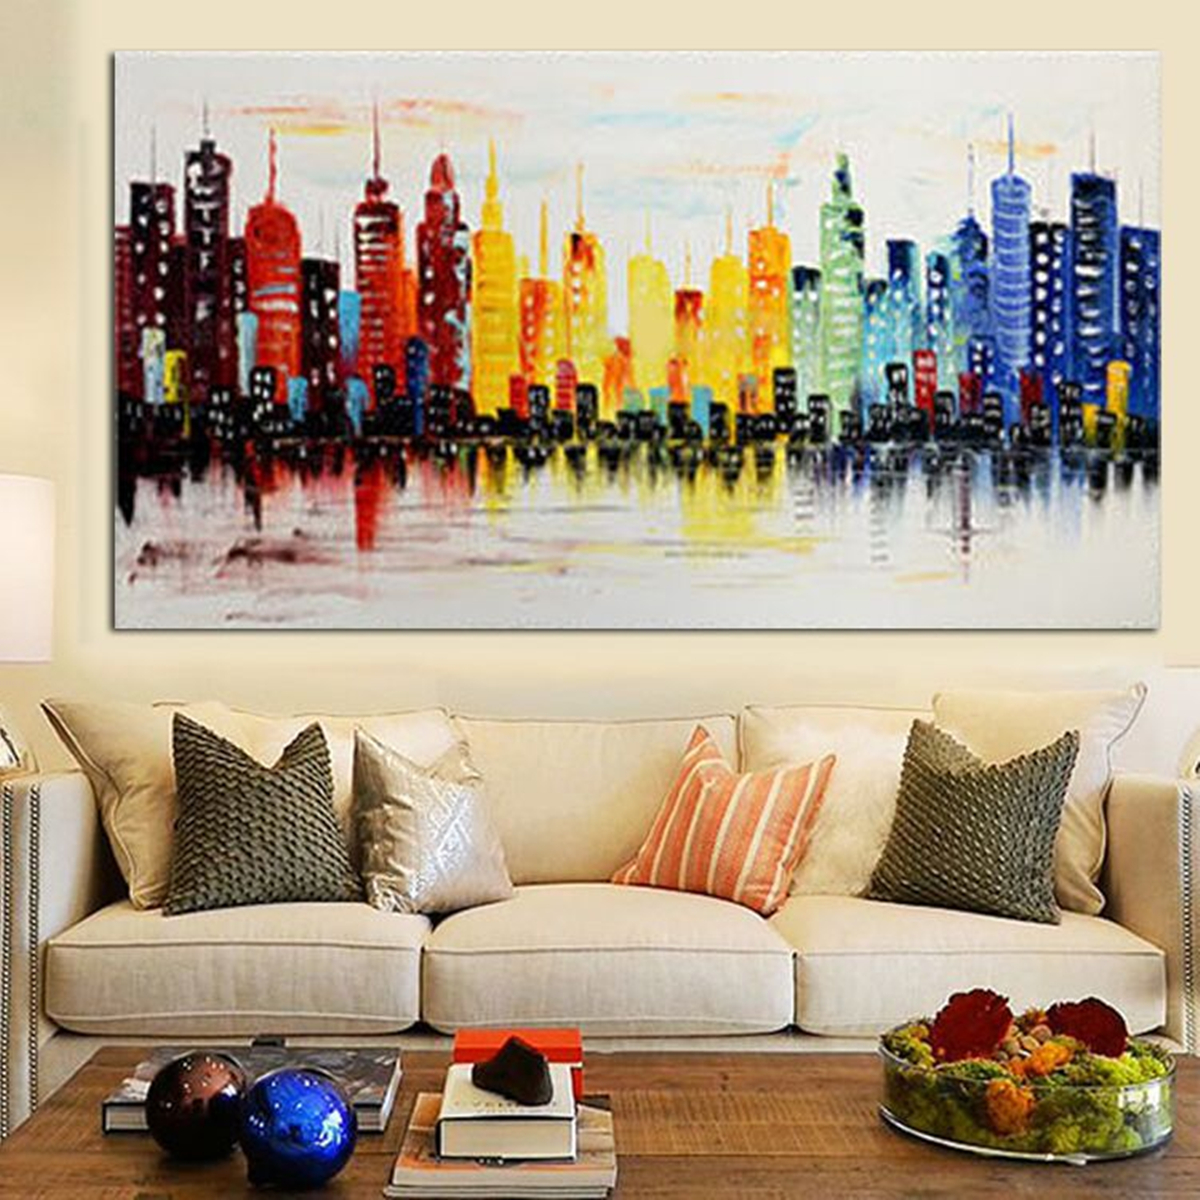 120x60cm Modern City Canvas Abstract Painting Print Living Room Art Wall Decor No Frame Alex Nld